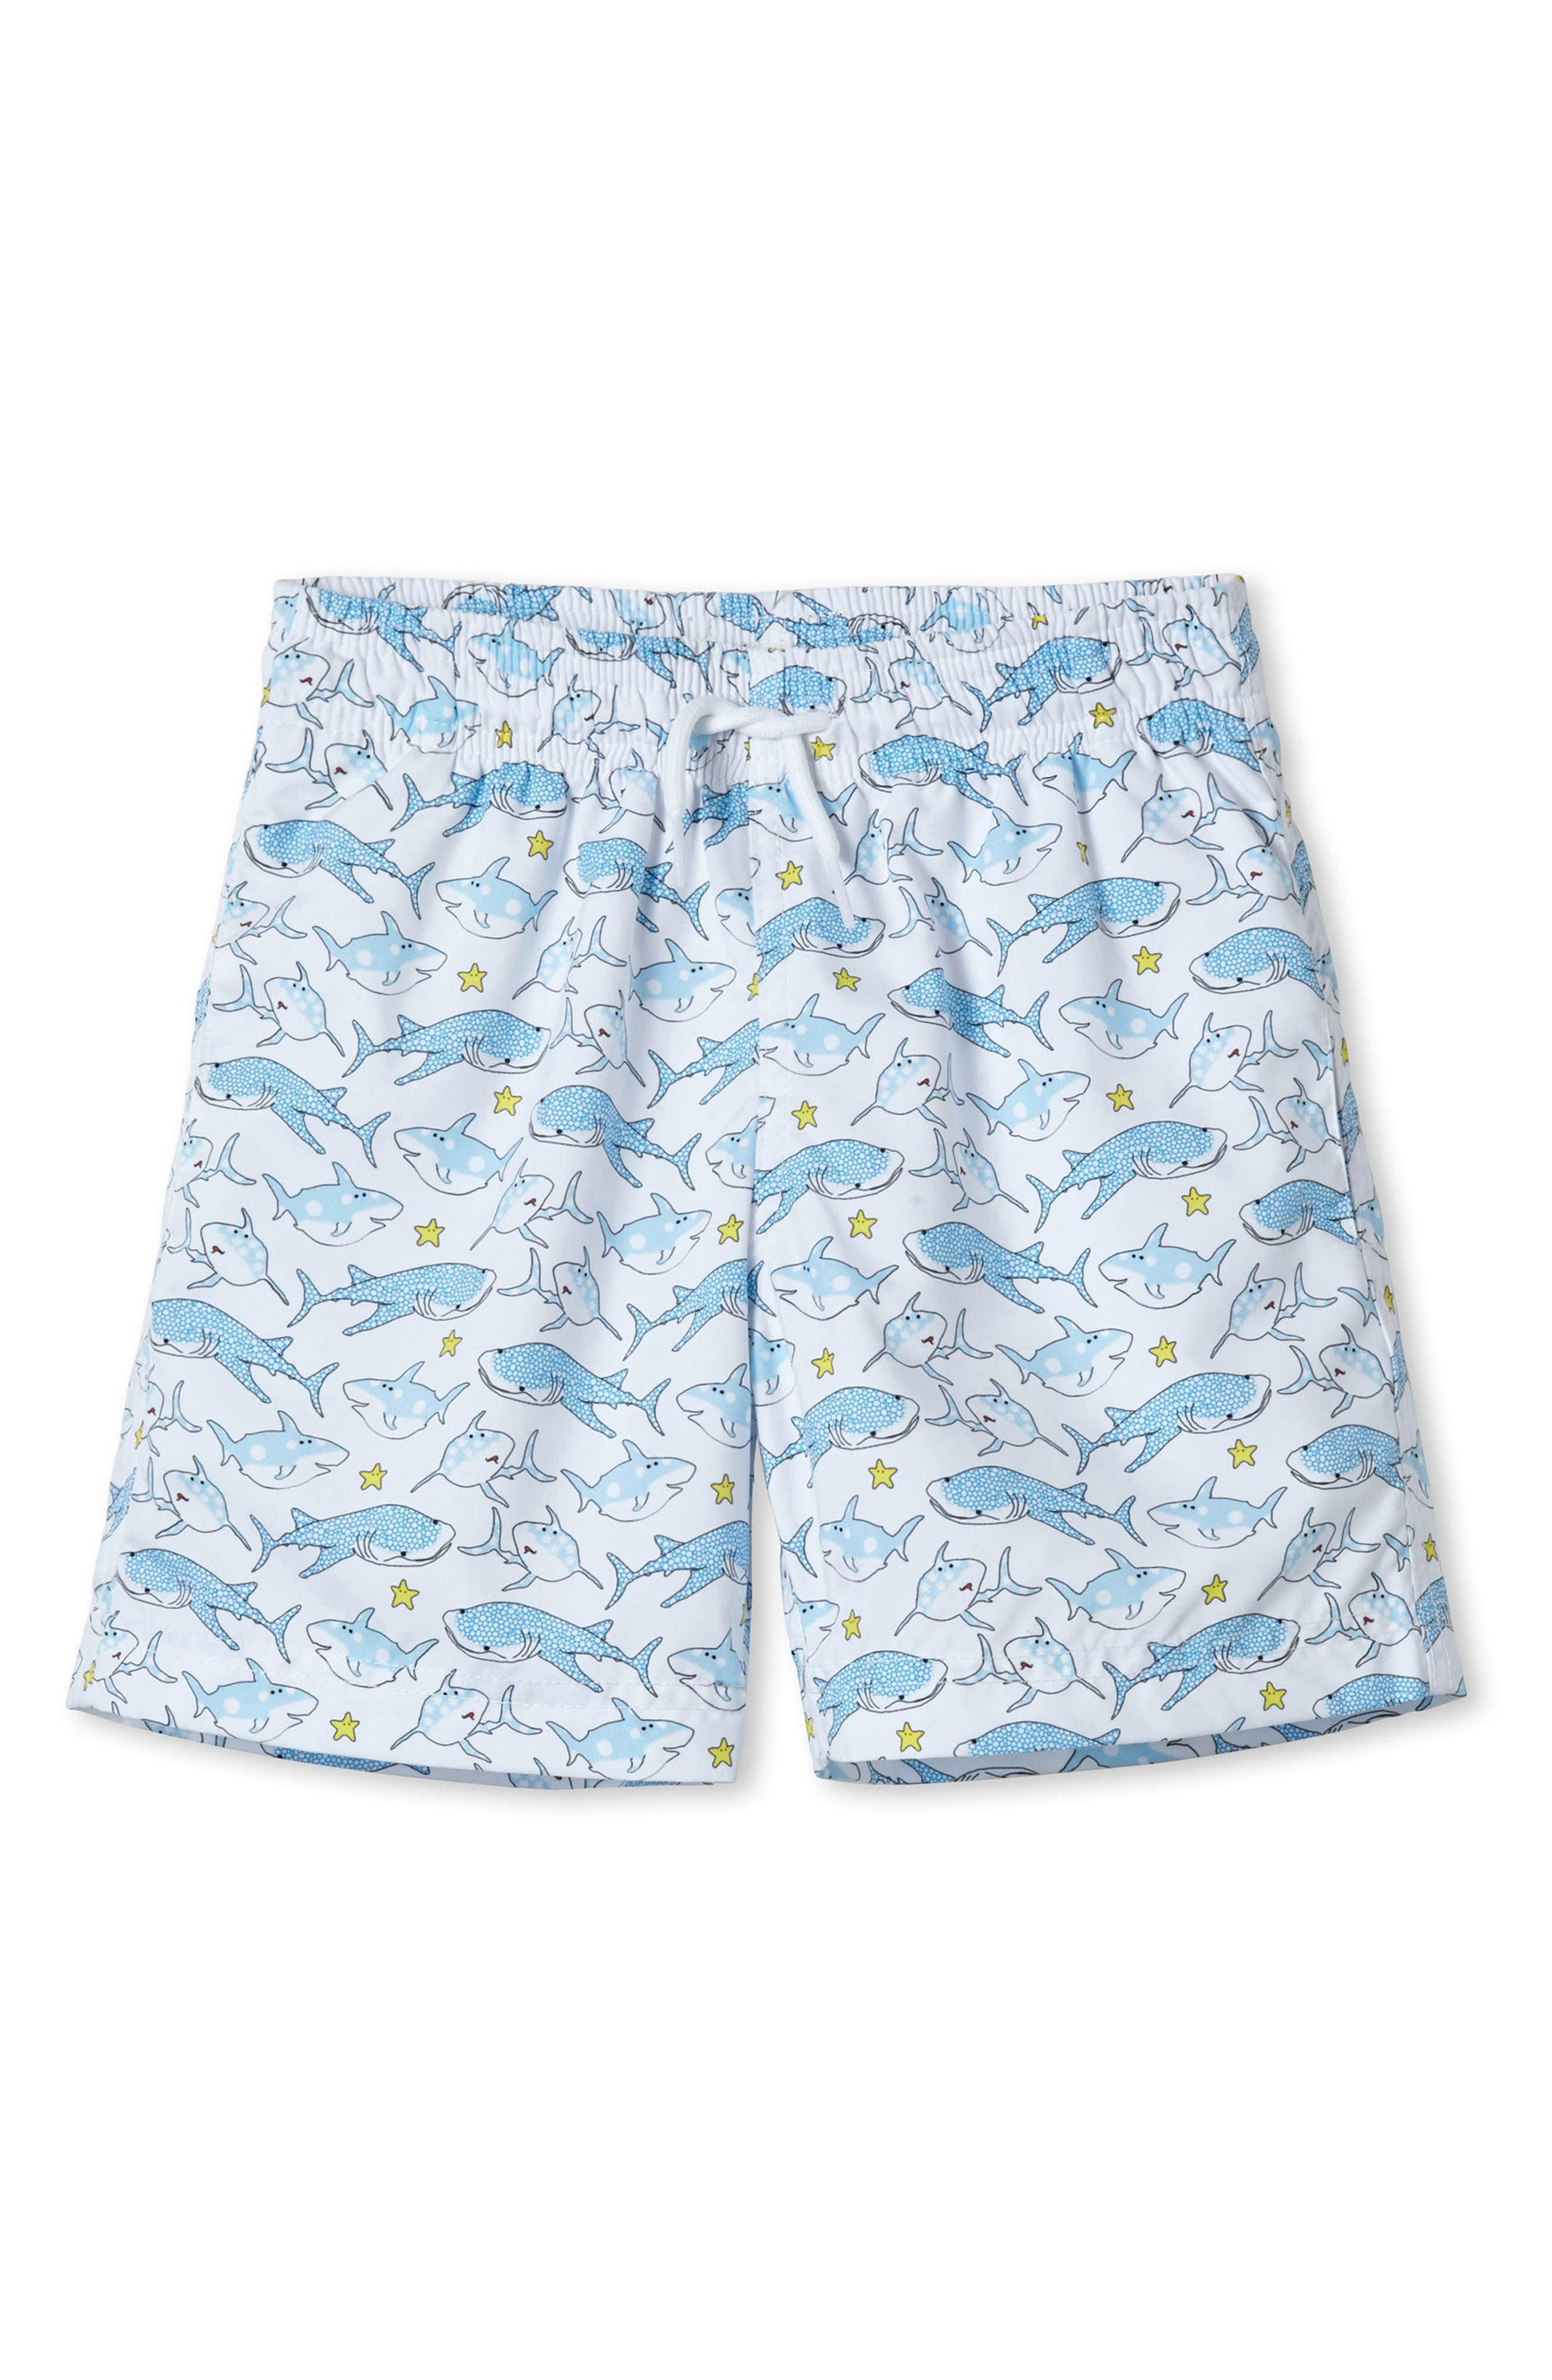 Stella Cove White Shark Swim Trunks (Toddler Boys & Little Boys)